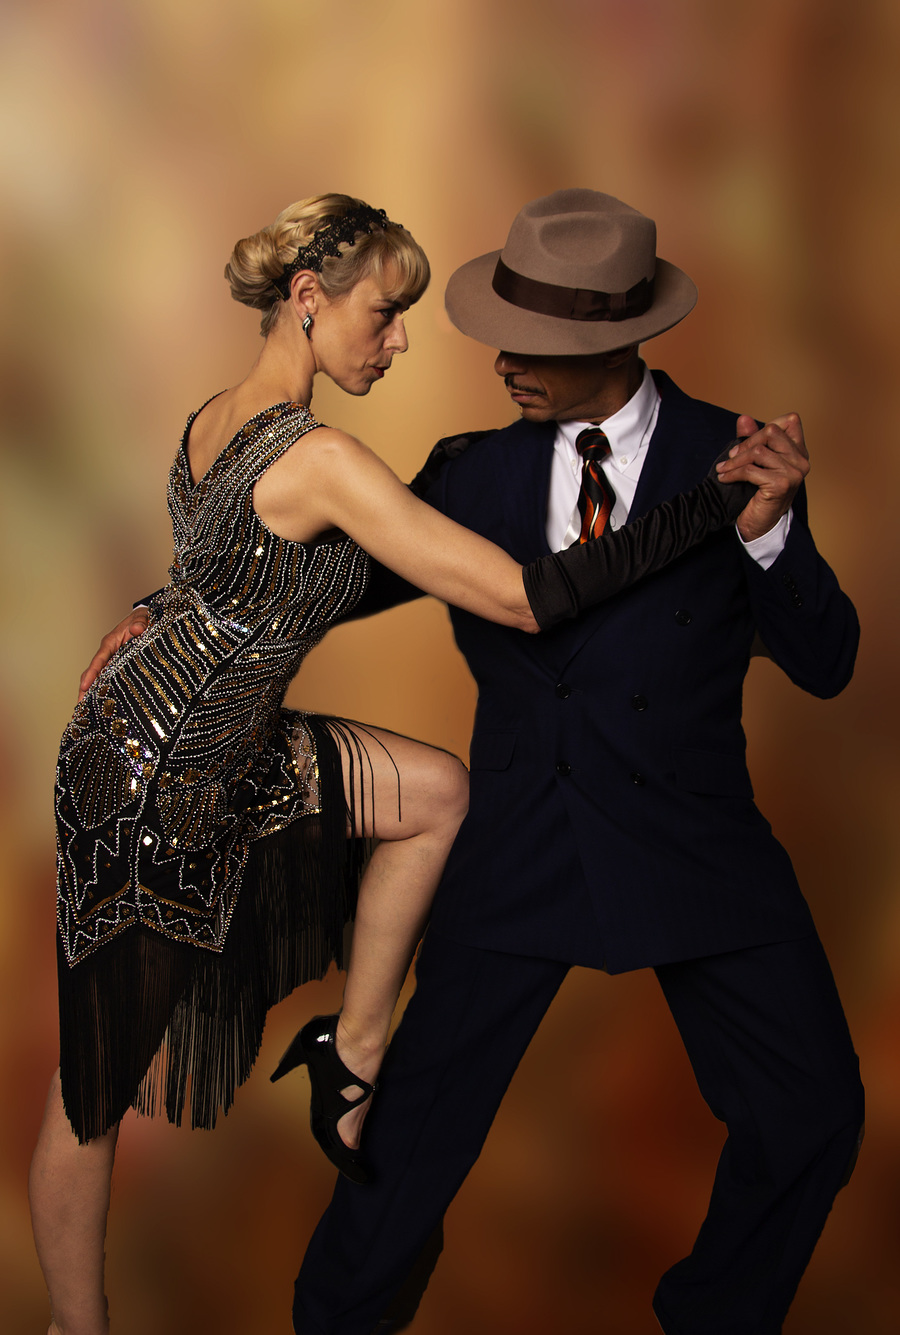 It takes two to tango / Photography by Val B, Models M e l a n y, Models Retro Rob, Taken at Inspire Studios Ltd / Uploaded 16th June 2019 @ 02:53 PM